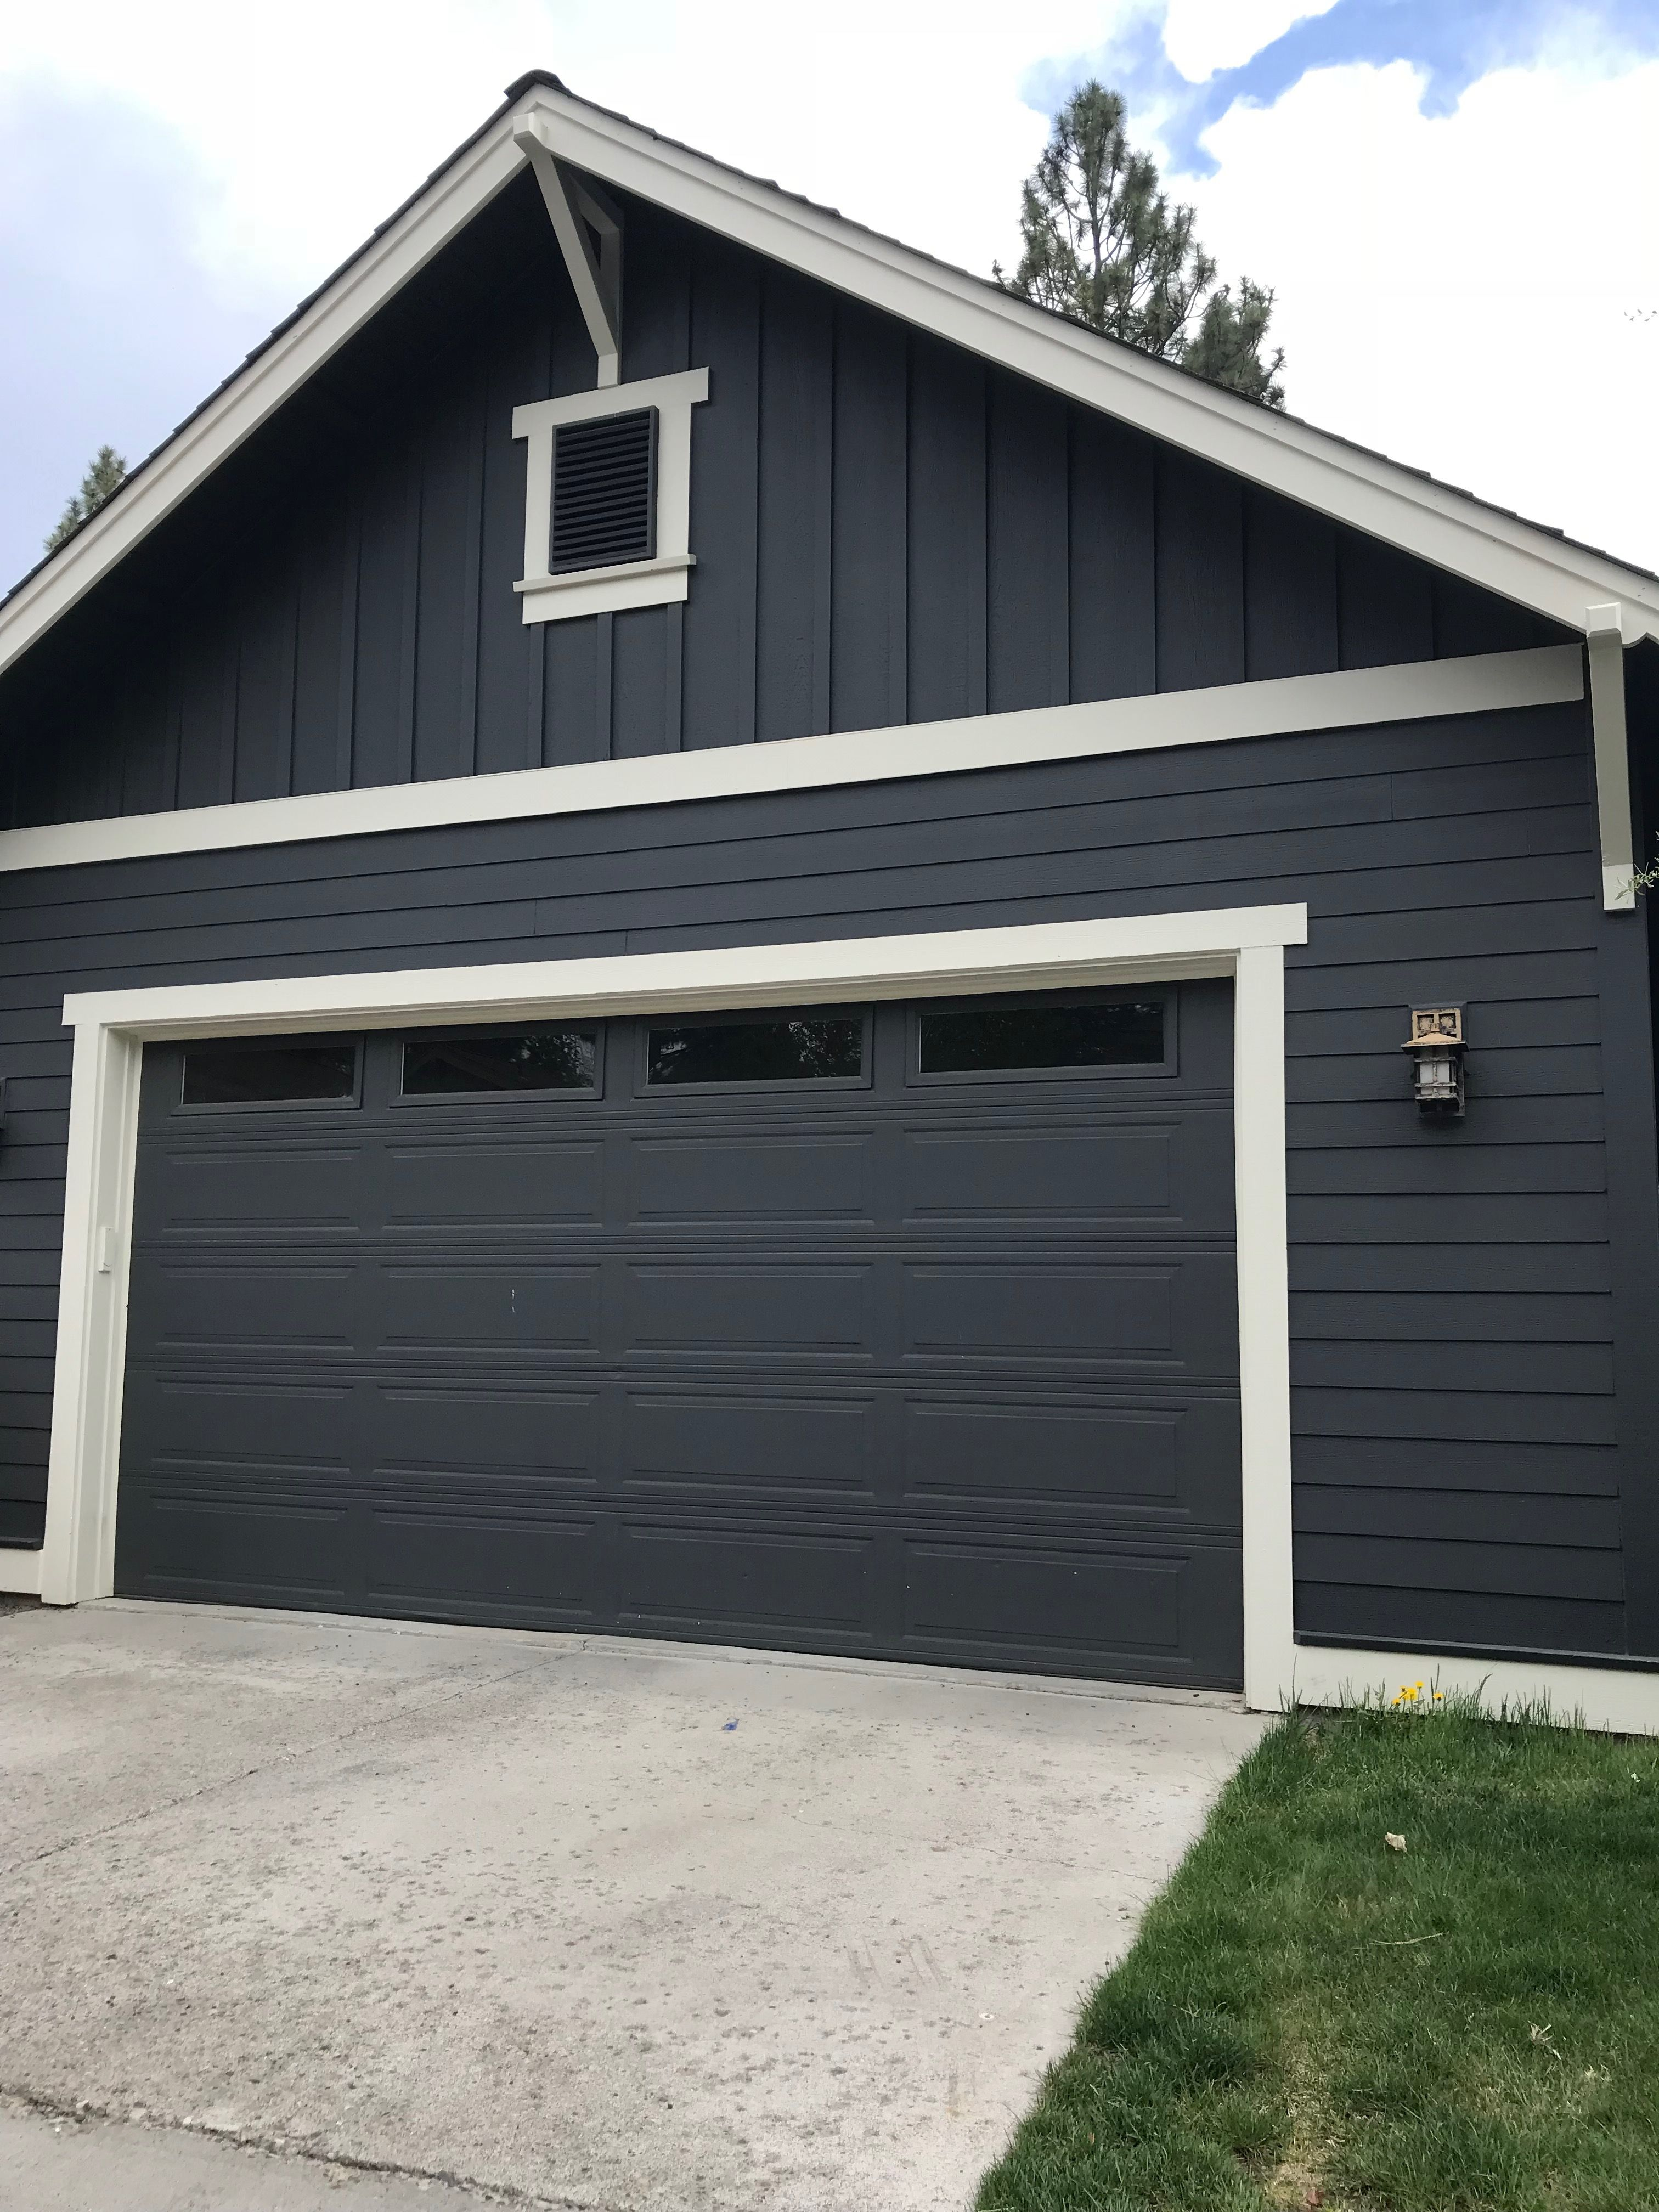 Wrought Iron Benjamin Moore House Paint Exterior House Exterior Gray House Exterior